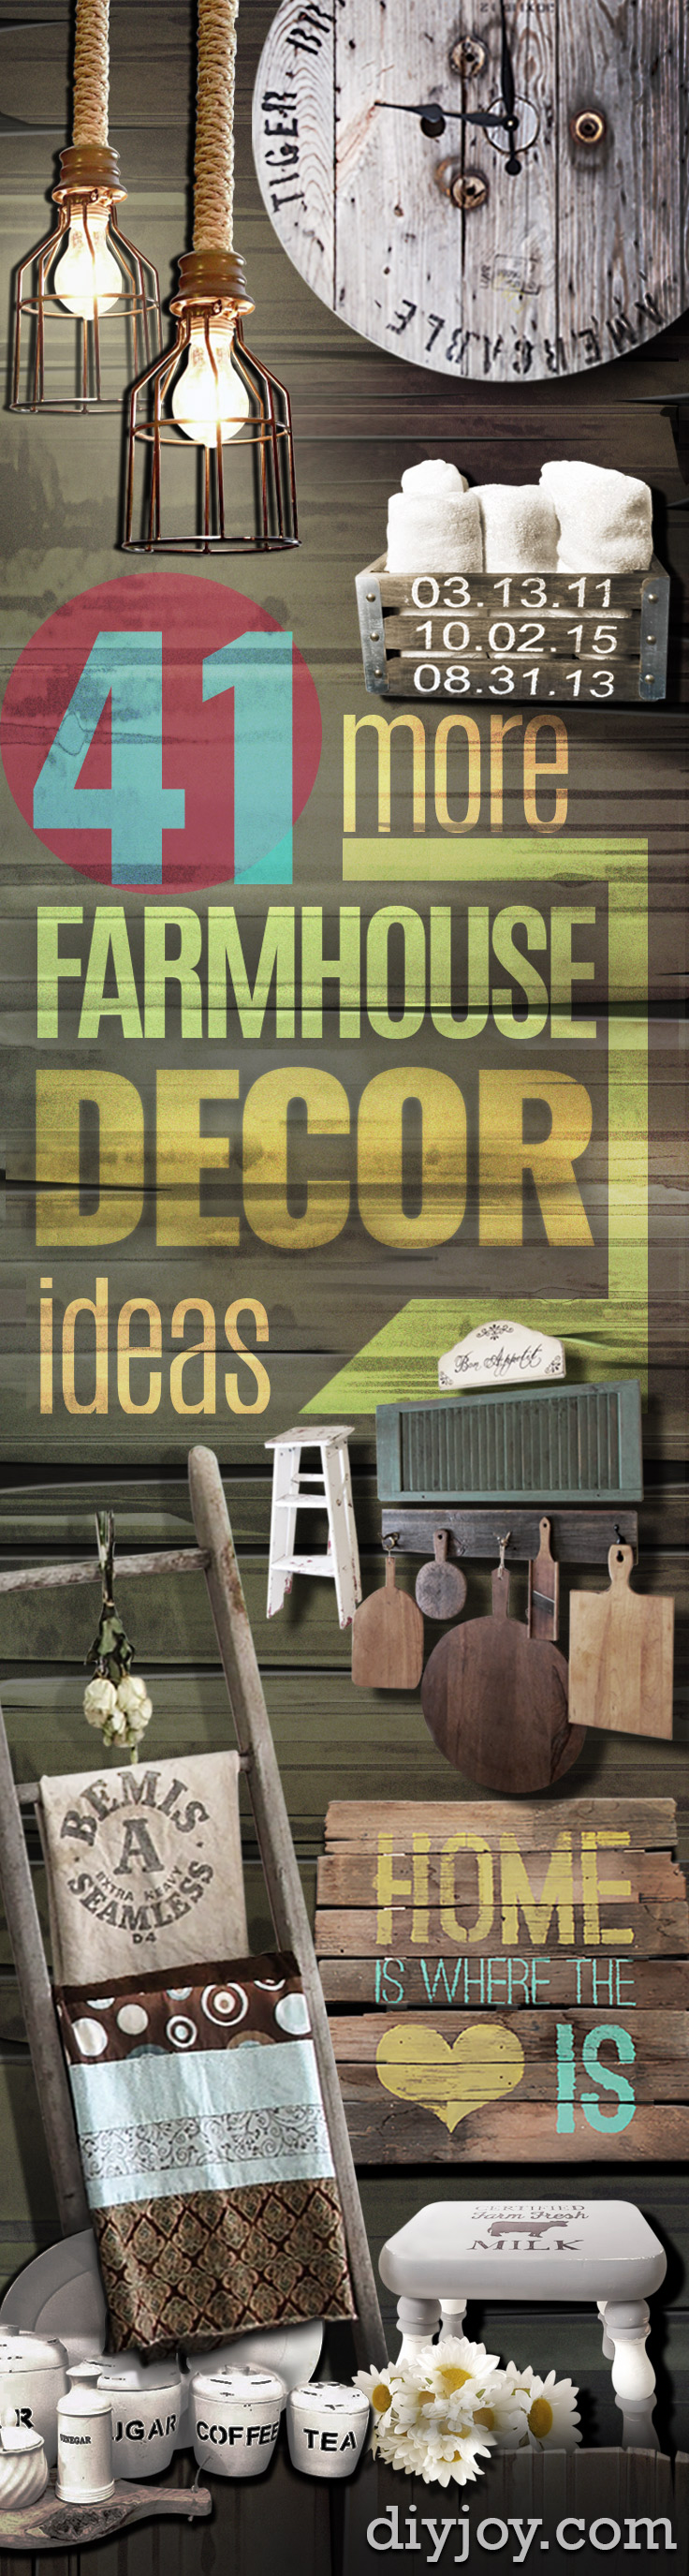 Creative DIY Farmhouse Style Decor Ideas - Creative Rustic Ideas for Cool Furniture, Paint Colors, Farm House Decoration for Living Room, Kitchen and Bedroom